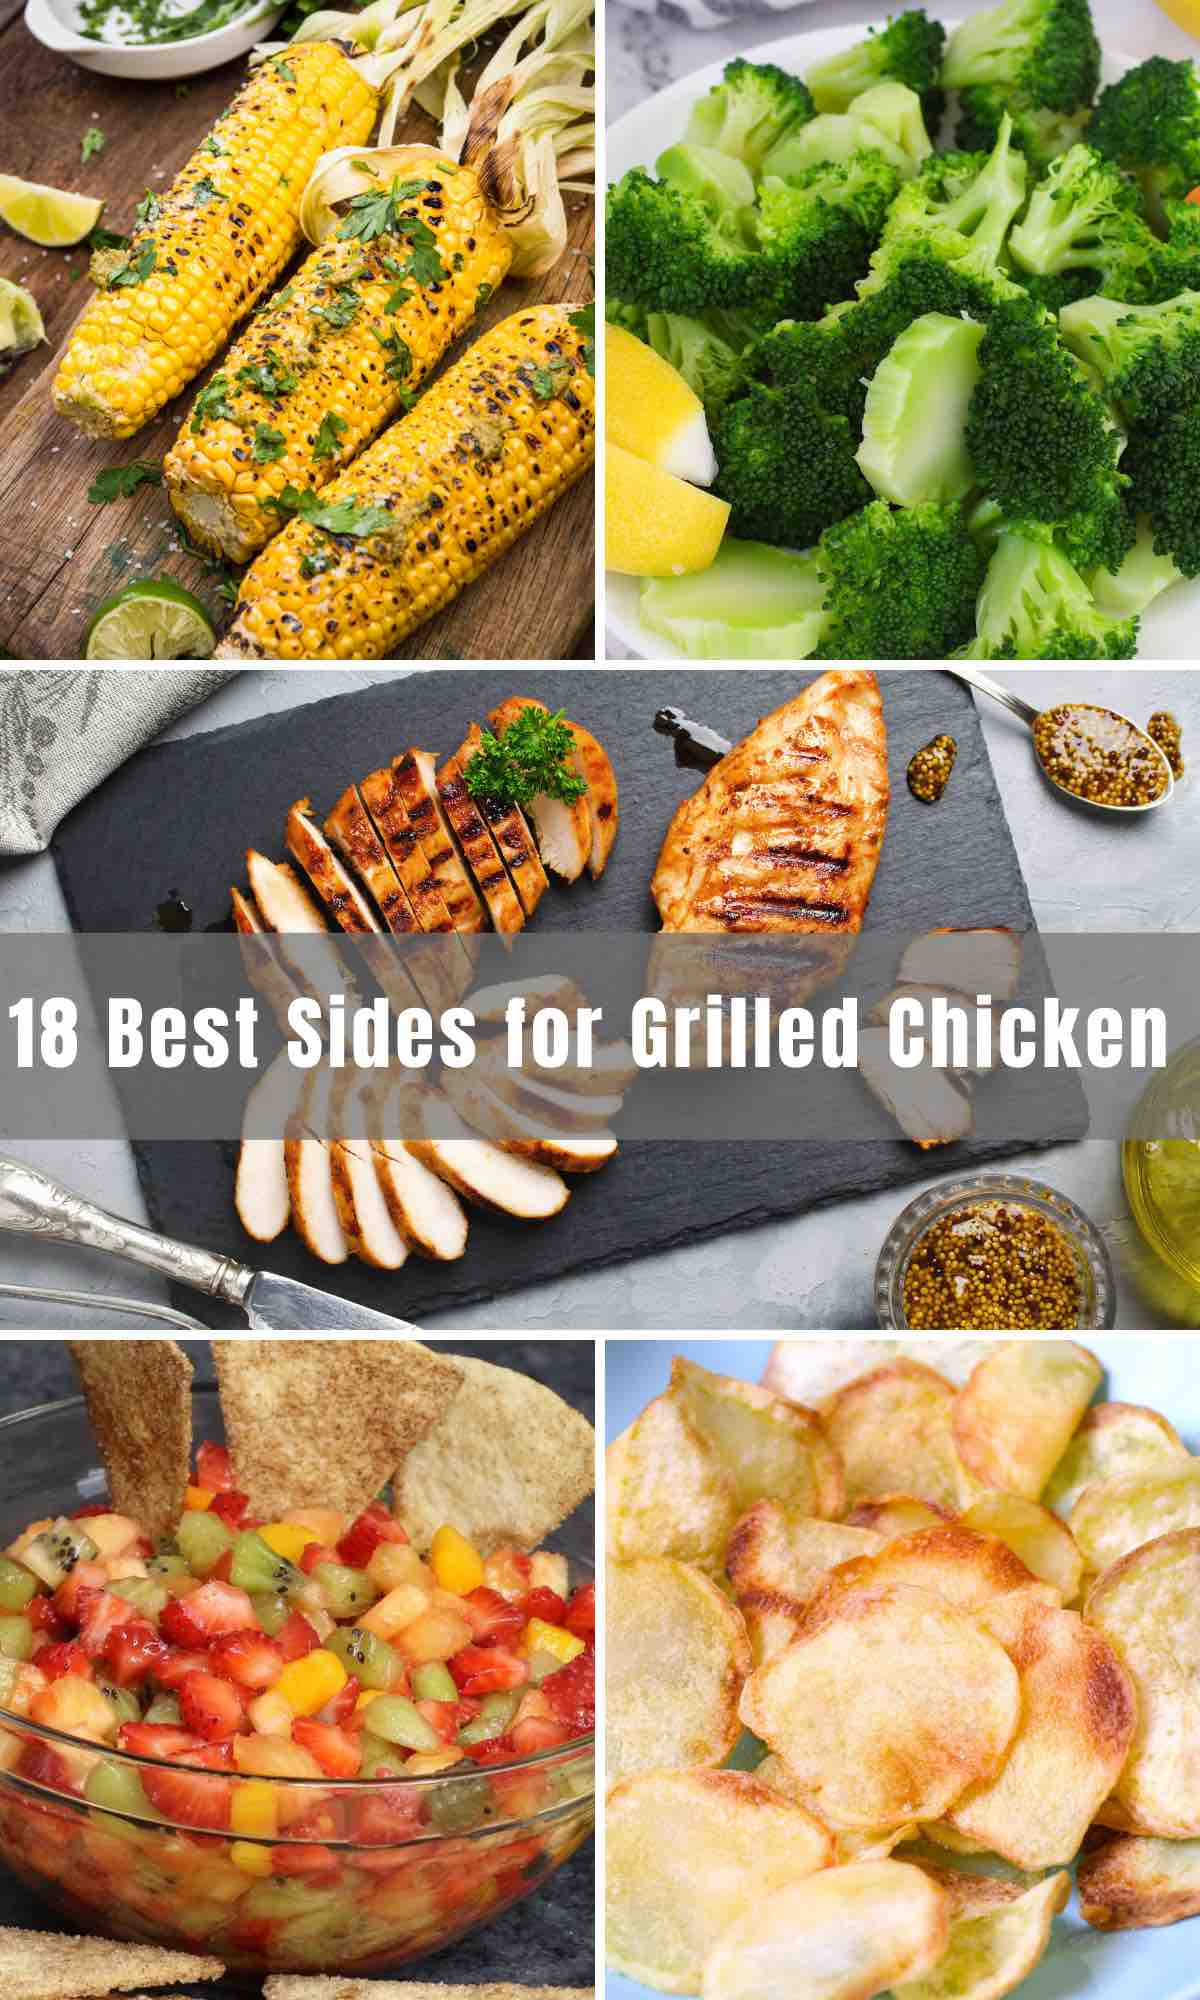 When preparing a summer BBQ, you know that the delicious side dishes will take your grilling experience to the next level. We've collected 18 best and easy Sides for Grilled Chicken, or steaks! From healthy sides like salads to traditional favorites like French fries, we've thrown in a few choices you would have never, ever, imagined.